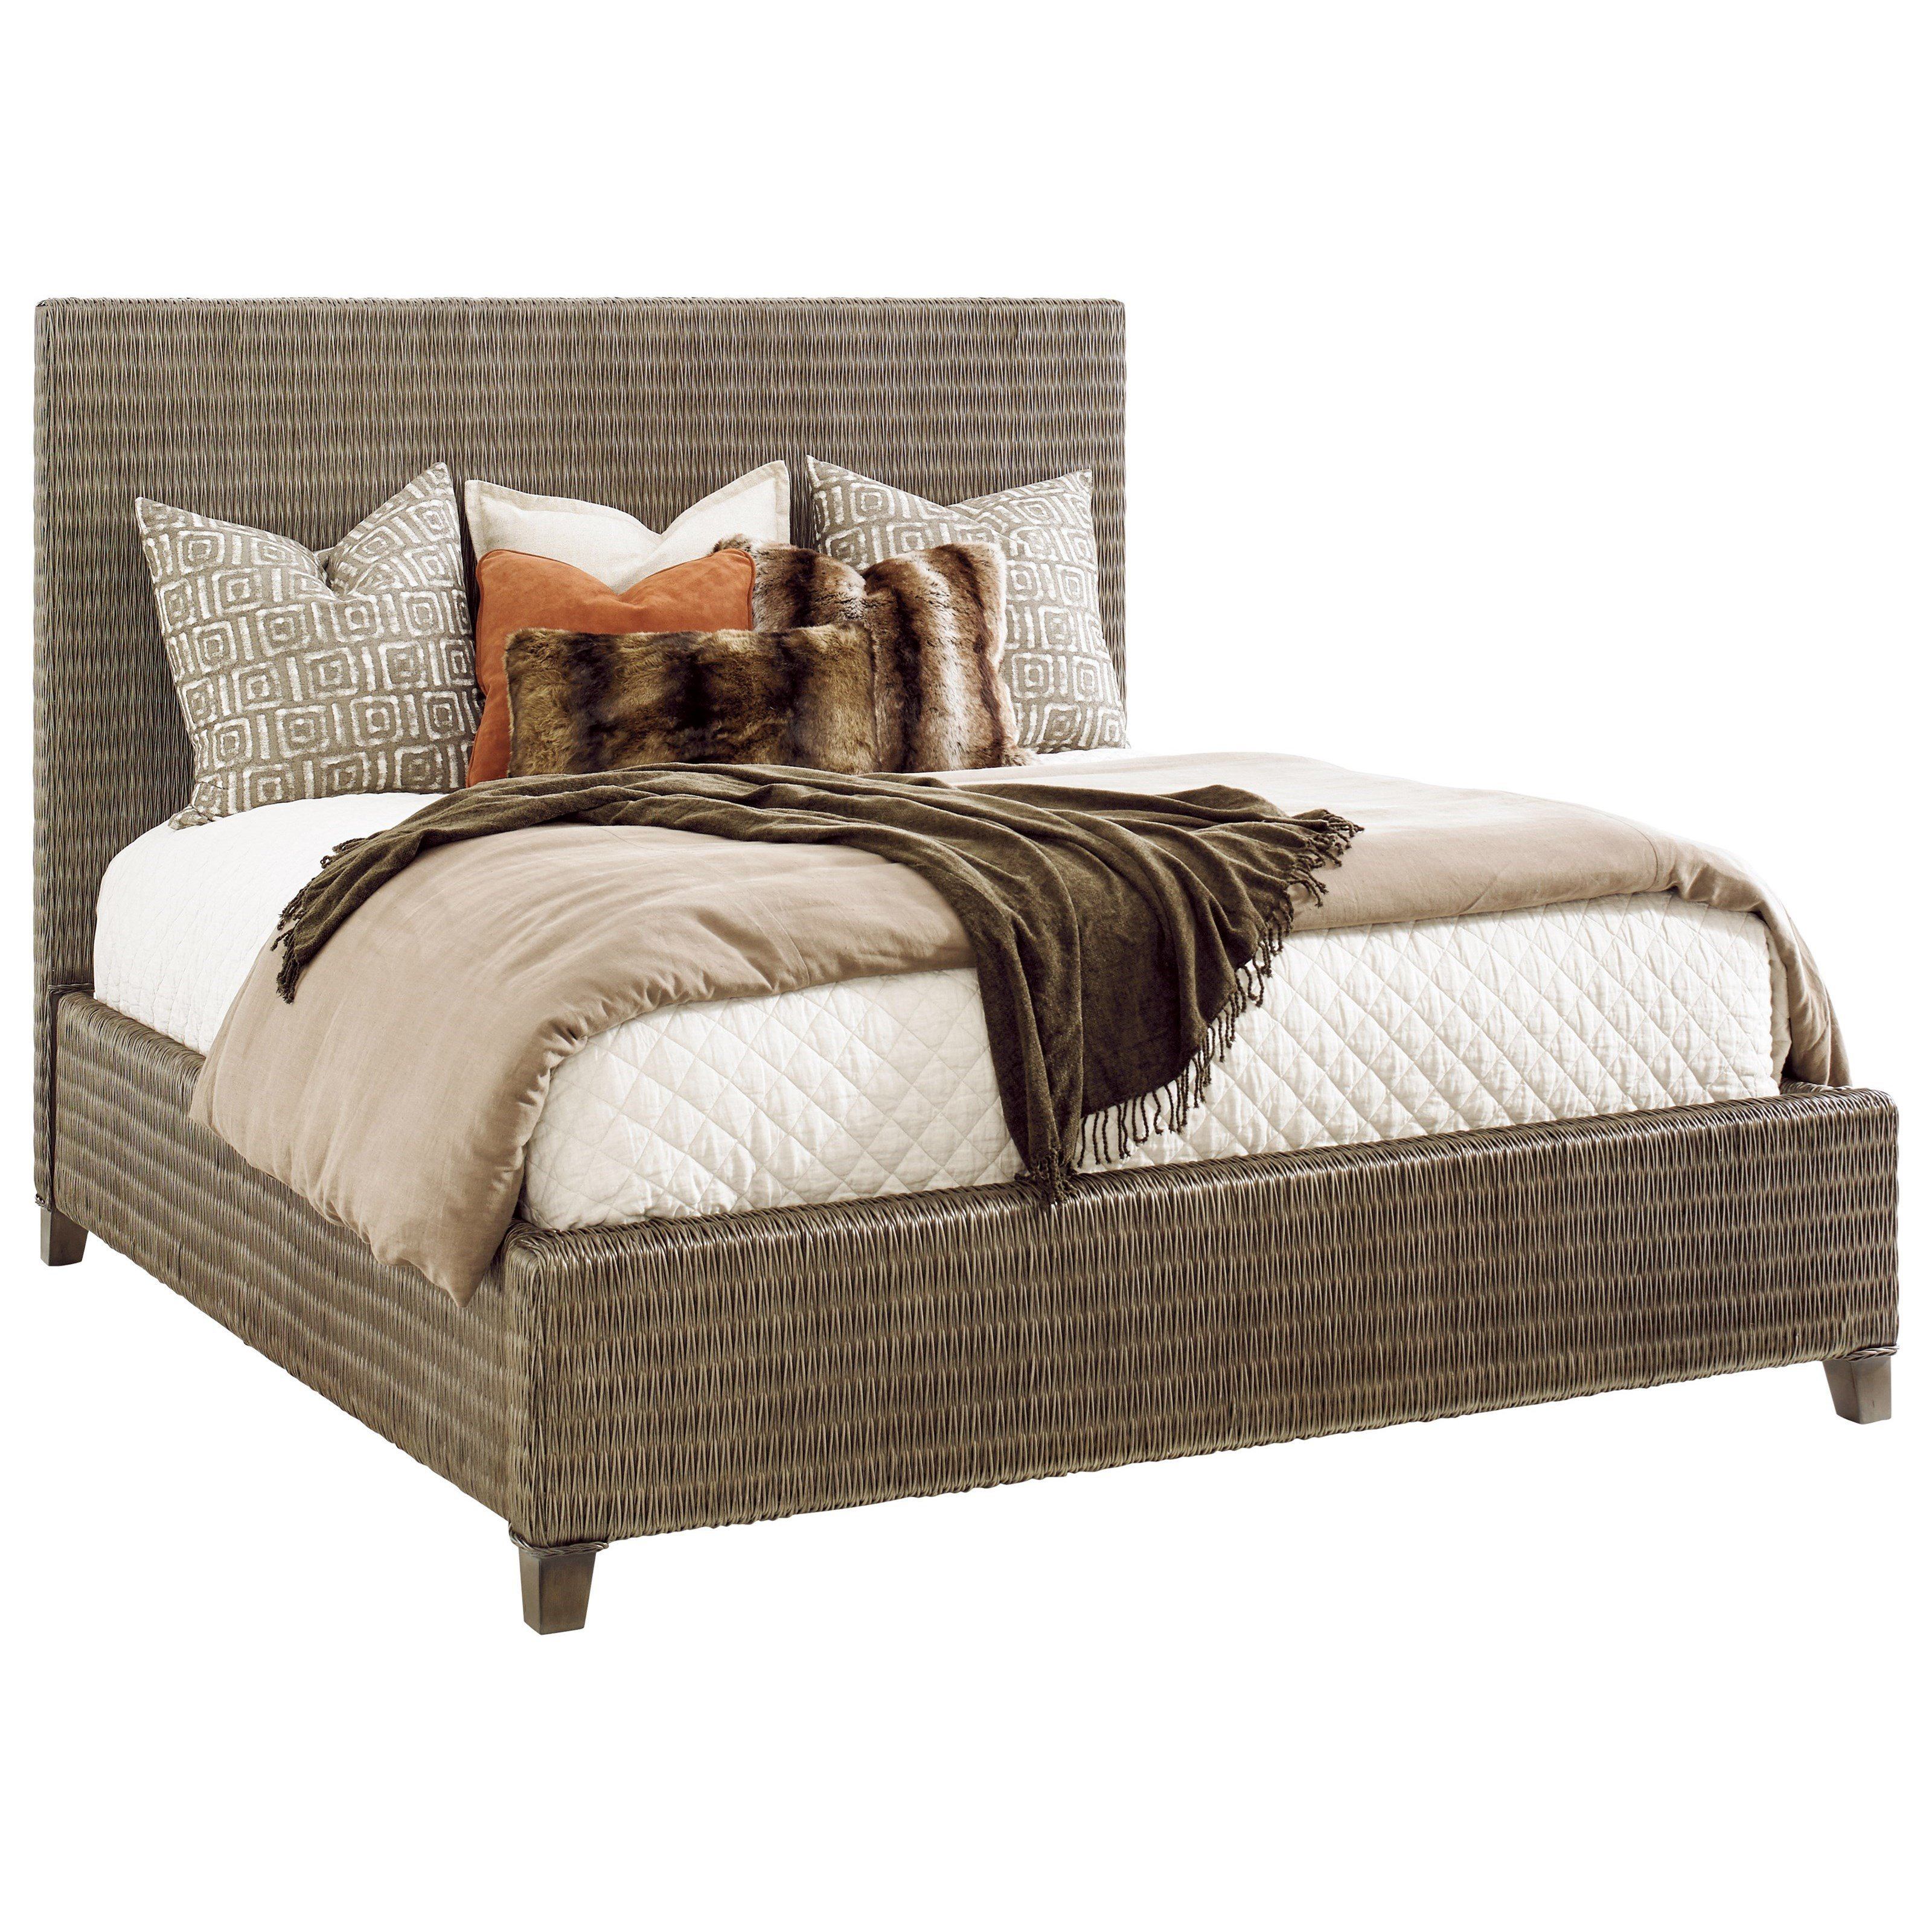 King Size Bedroom Benches Luxury tommy Bahama Home Cypress Point 562 134c Driftwood isle